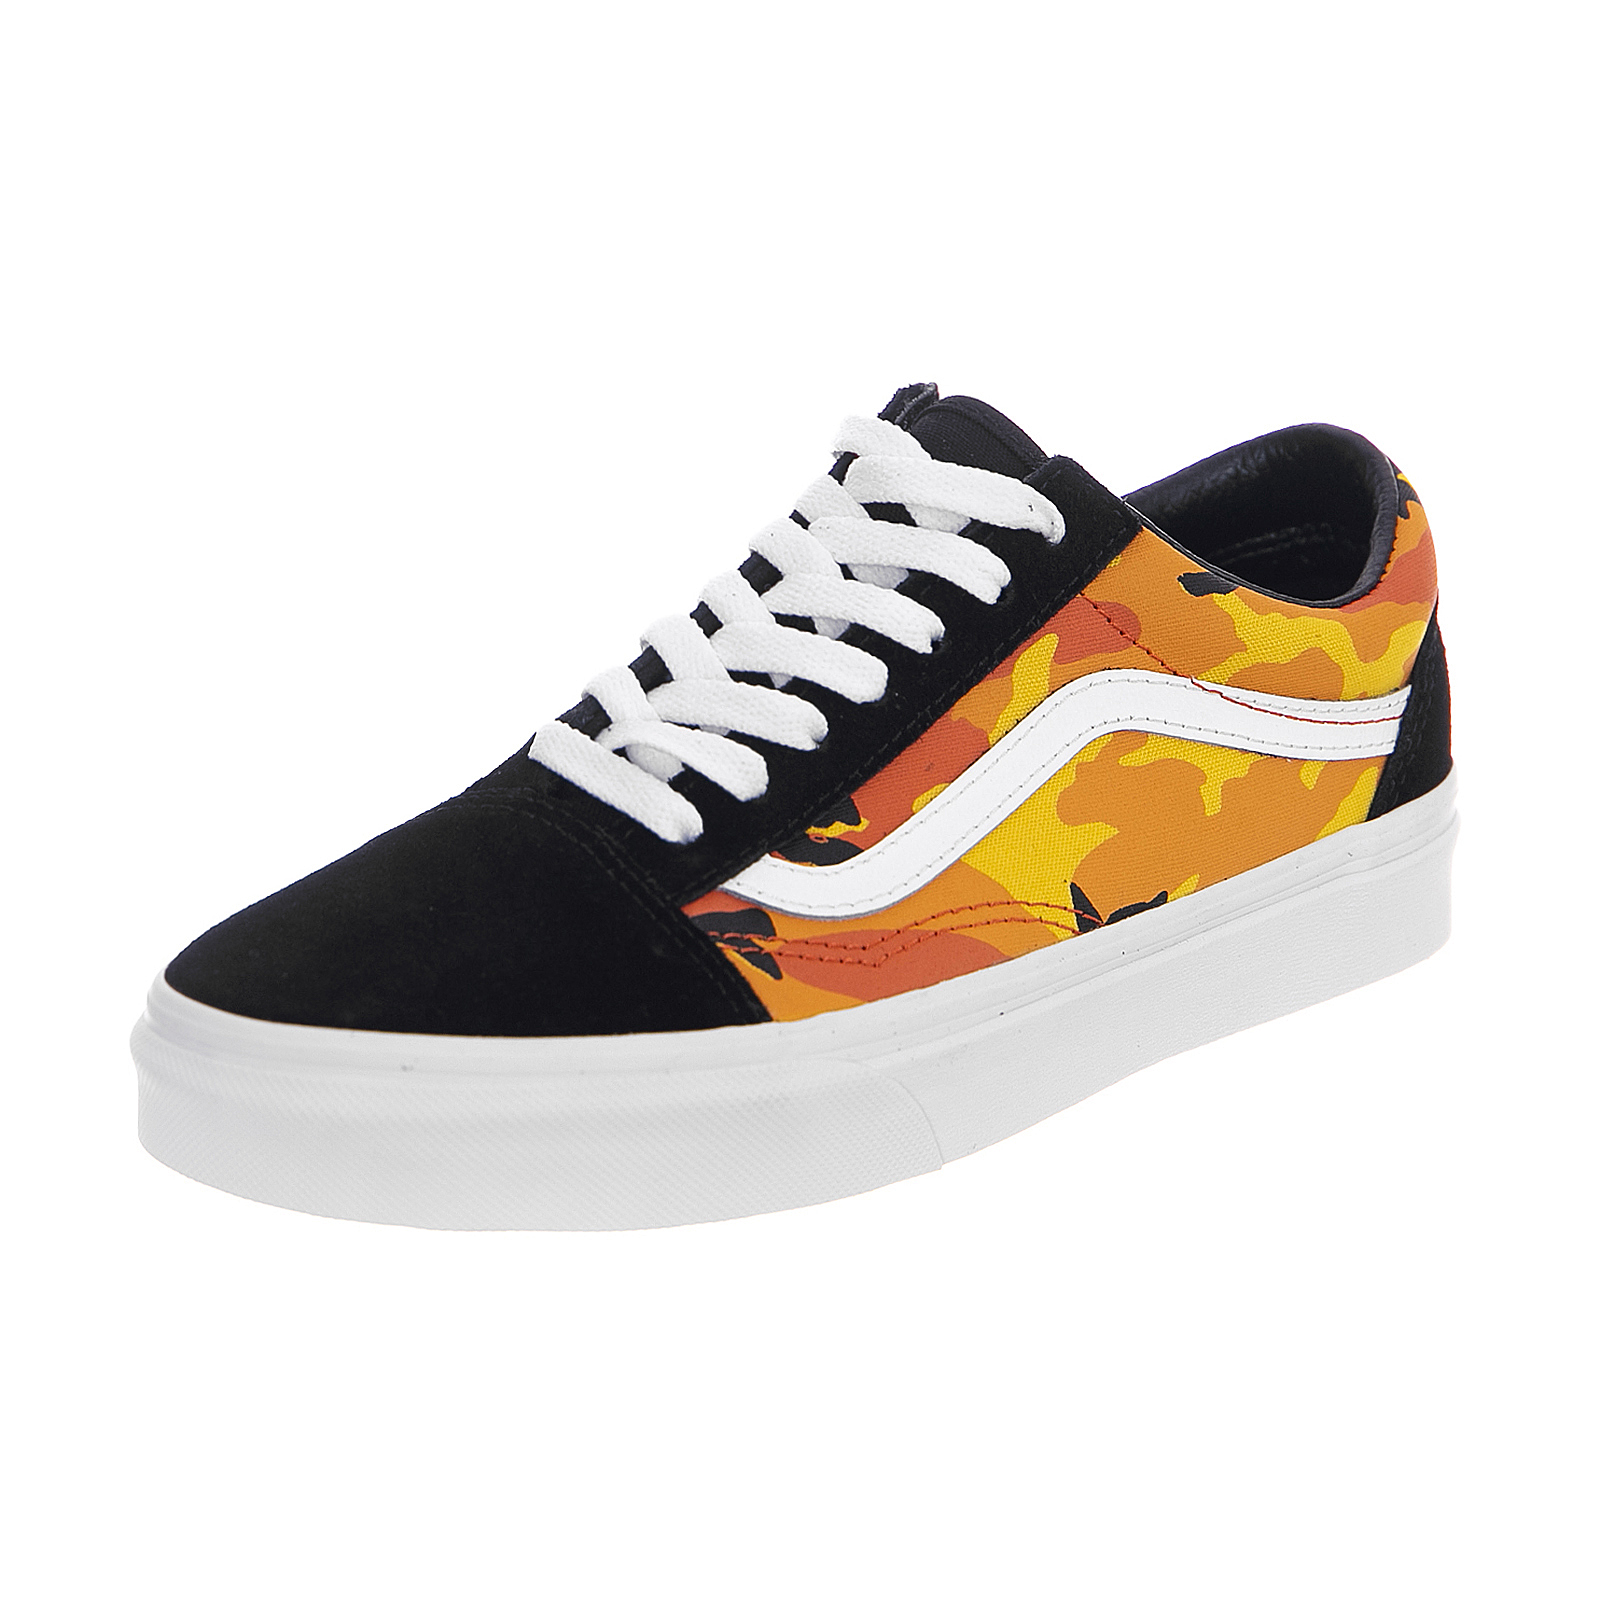 Vans Sneakers Ua Old Skool (Pop Camo) Black Spicy Orange True White ... 8fbc3ddf0